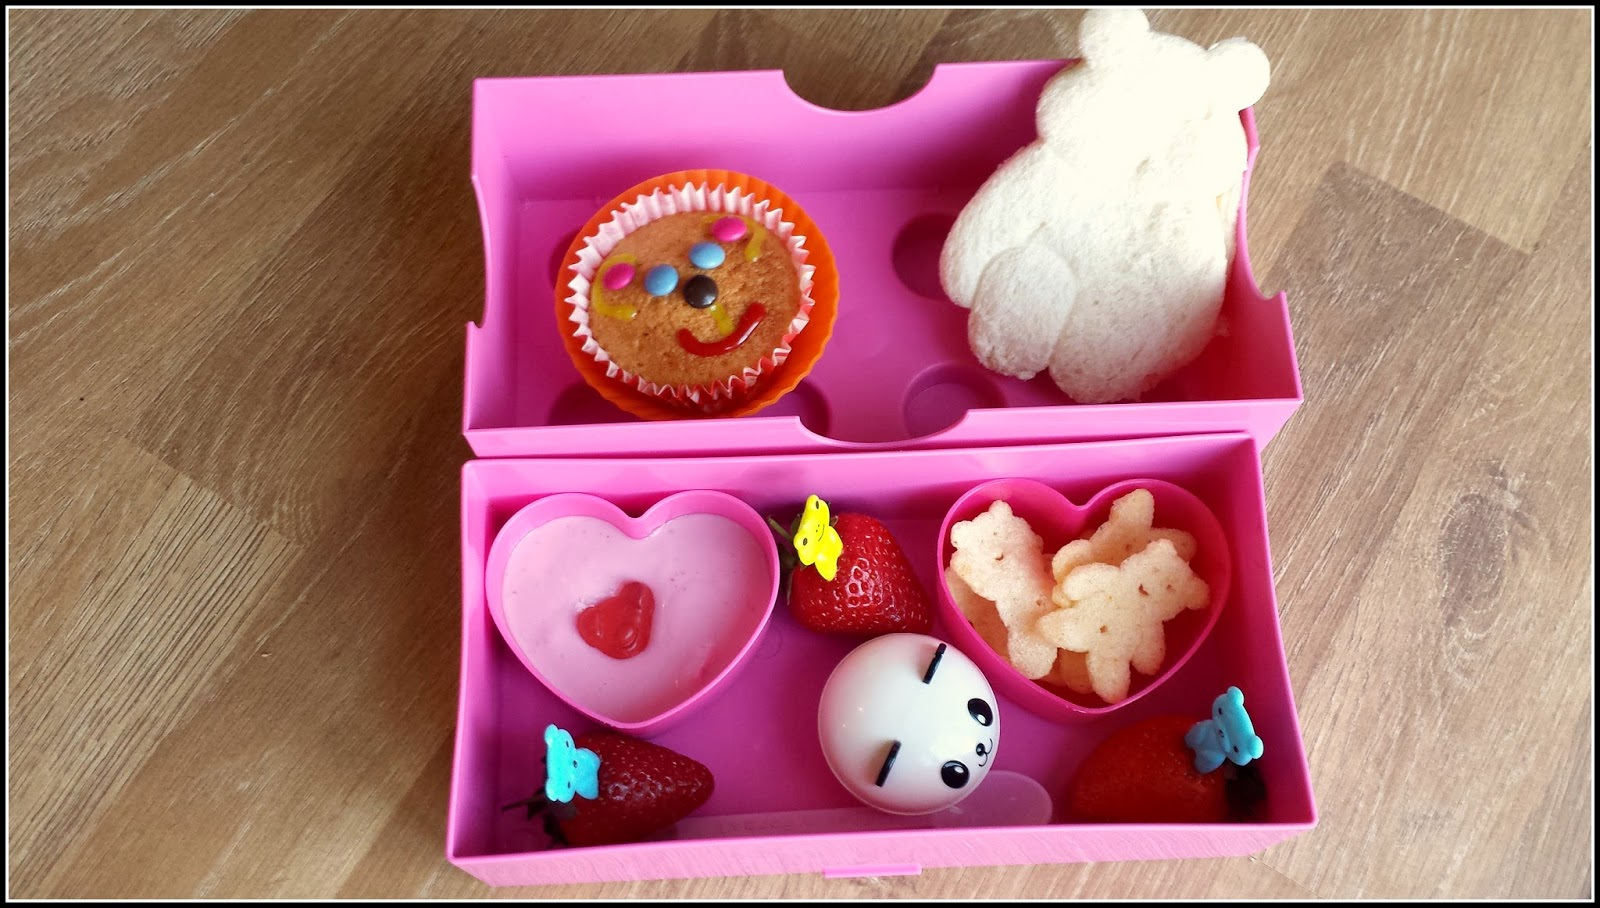 A bear inspired Bento lunchbox